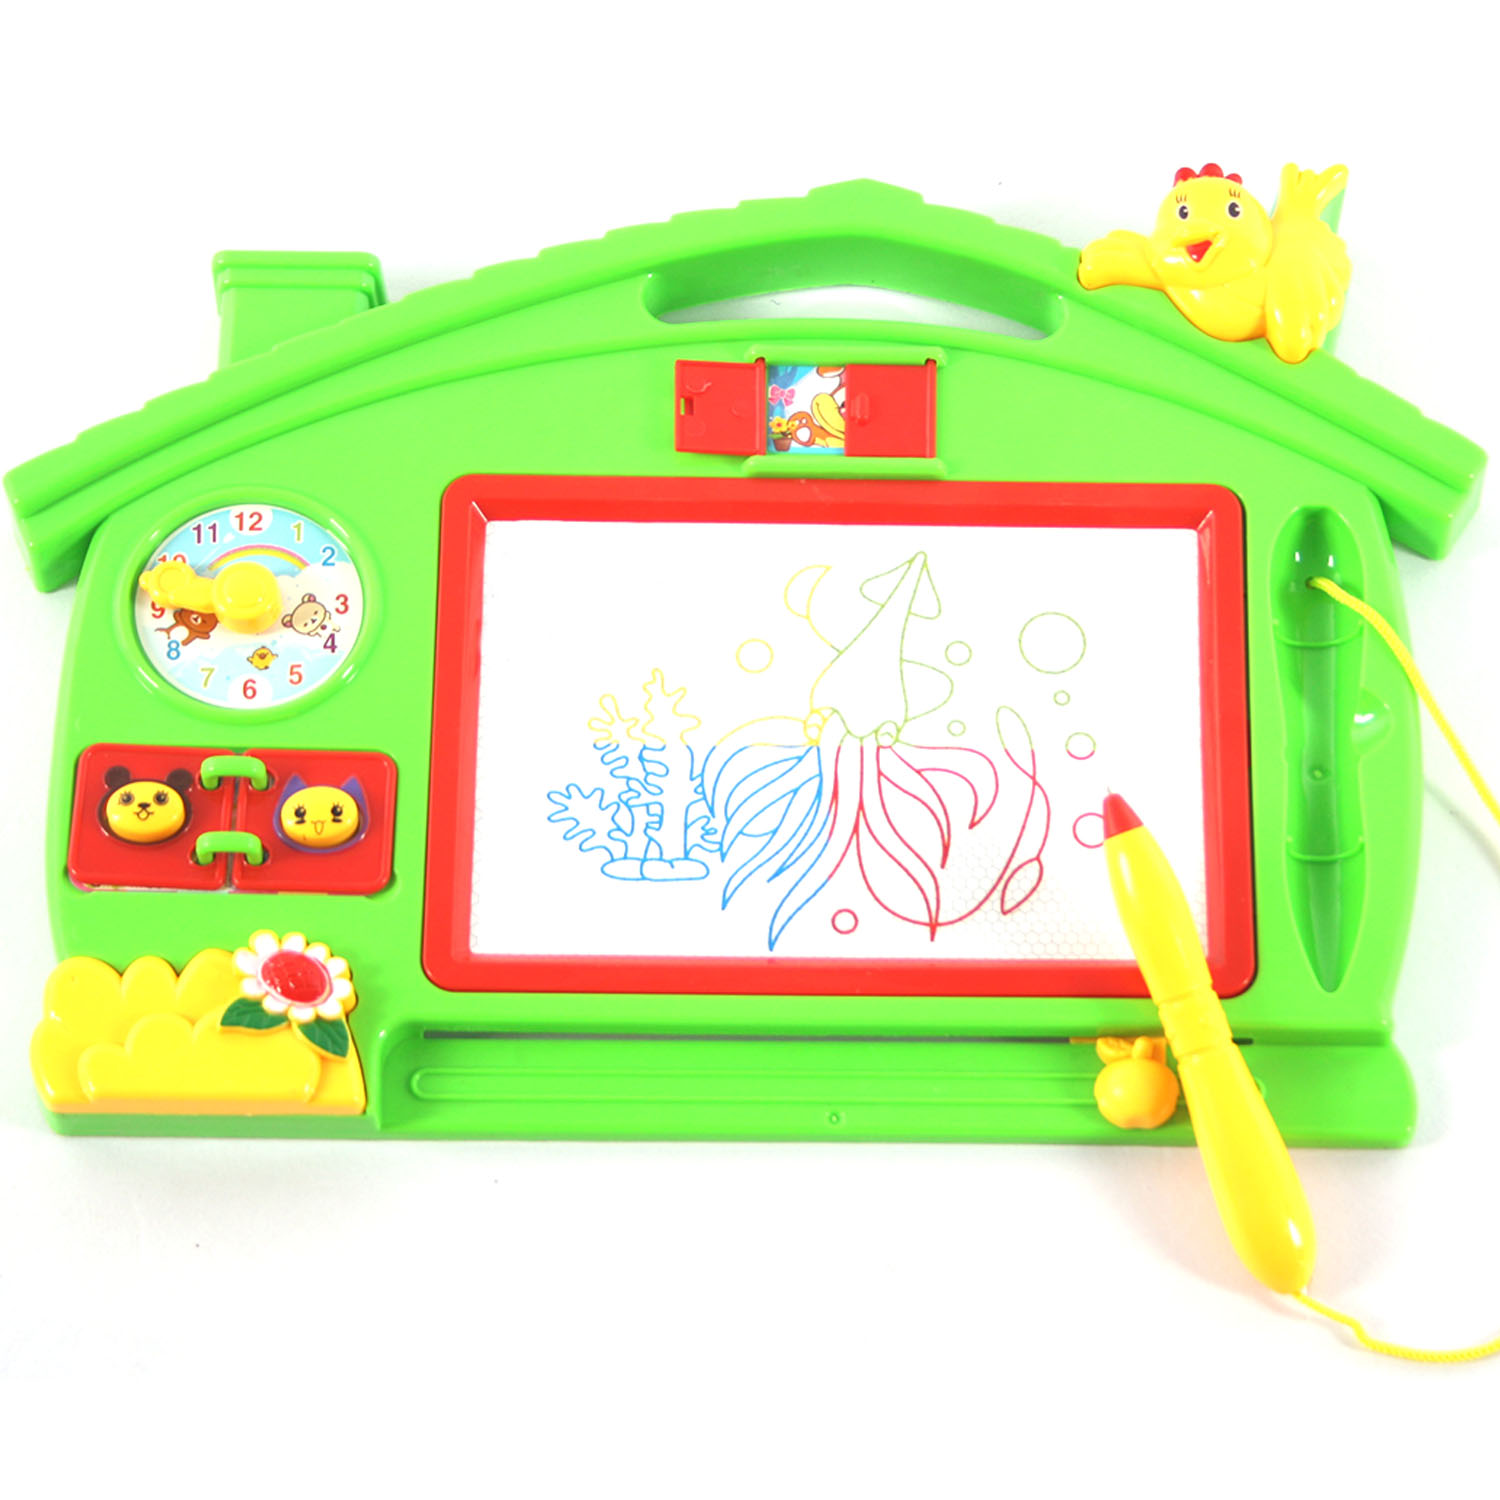 Reuse Colorful Magnetic Drawing Board Large Writing Board Baby Painting Graffiti Writing Erasable Doodle Boards Drawing Kid Toys